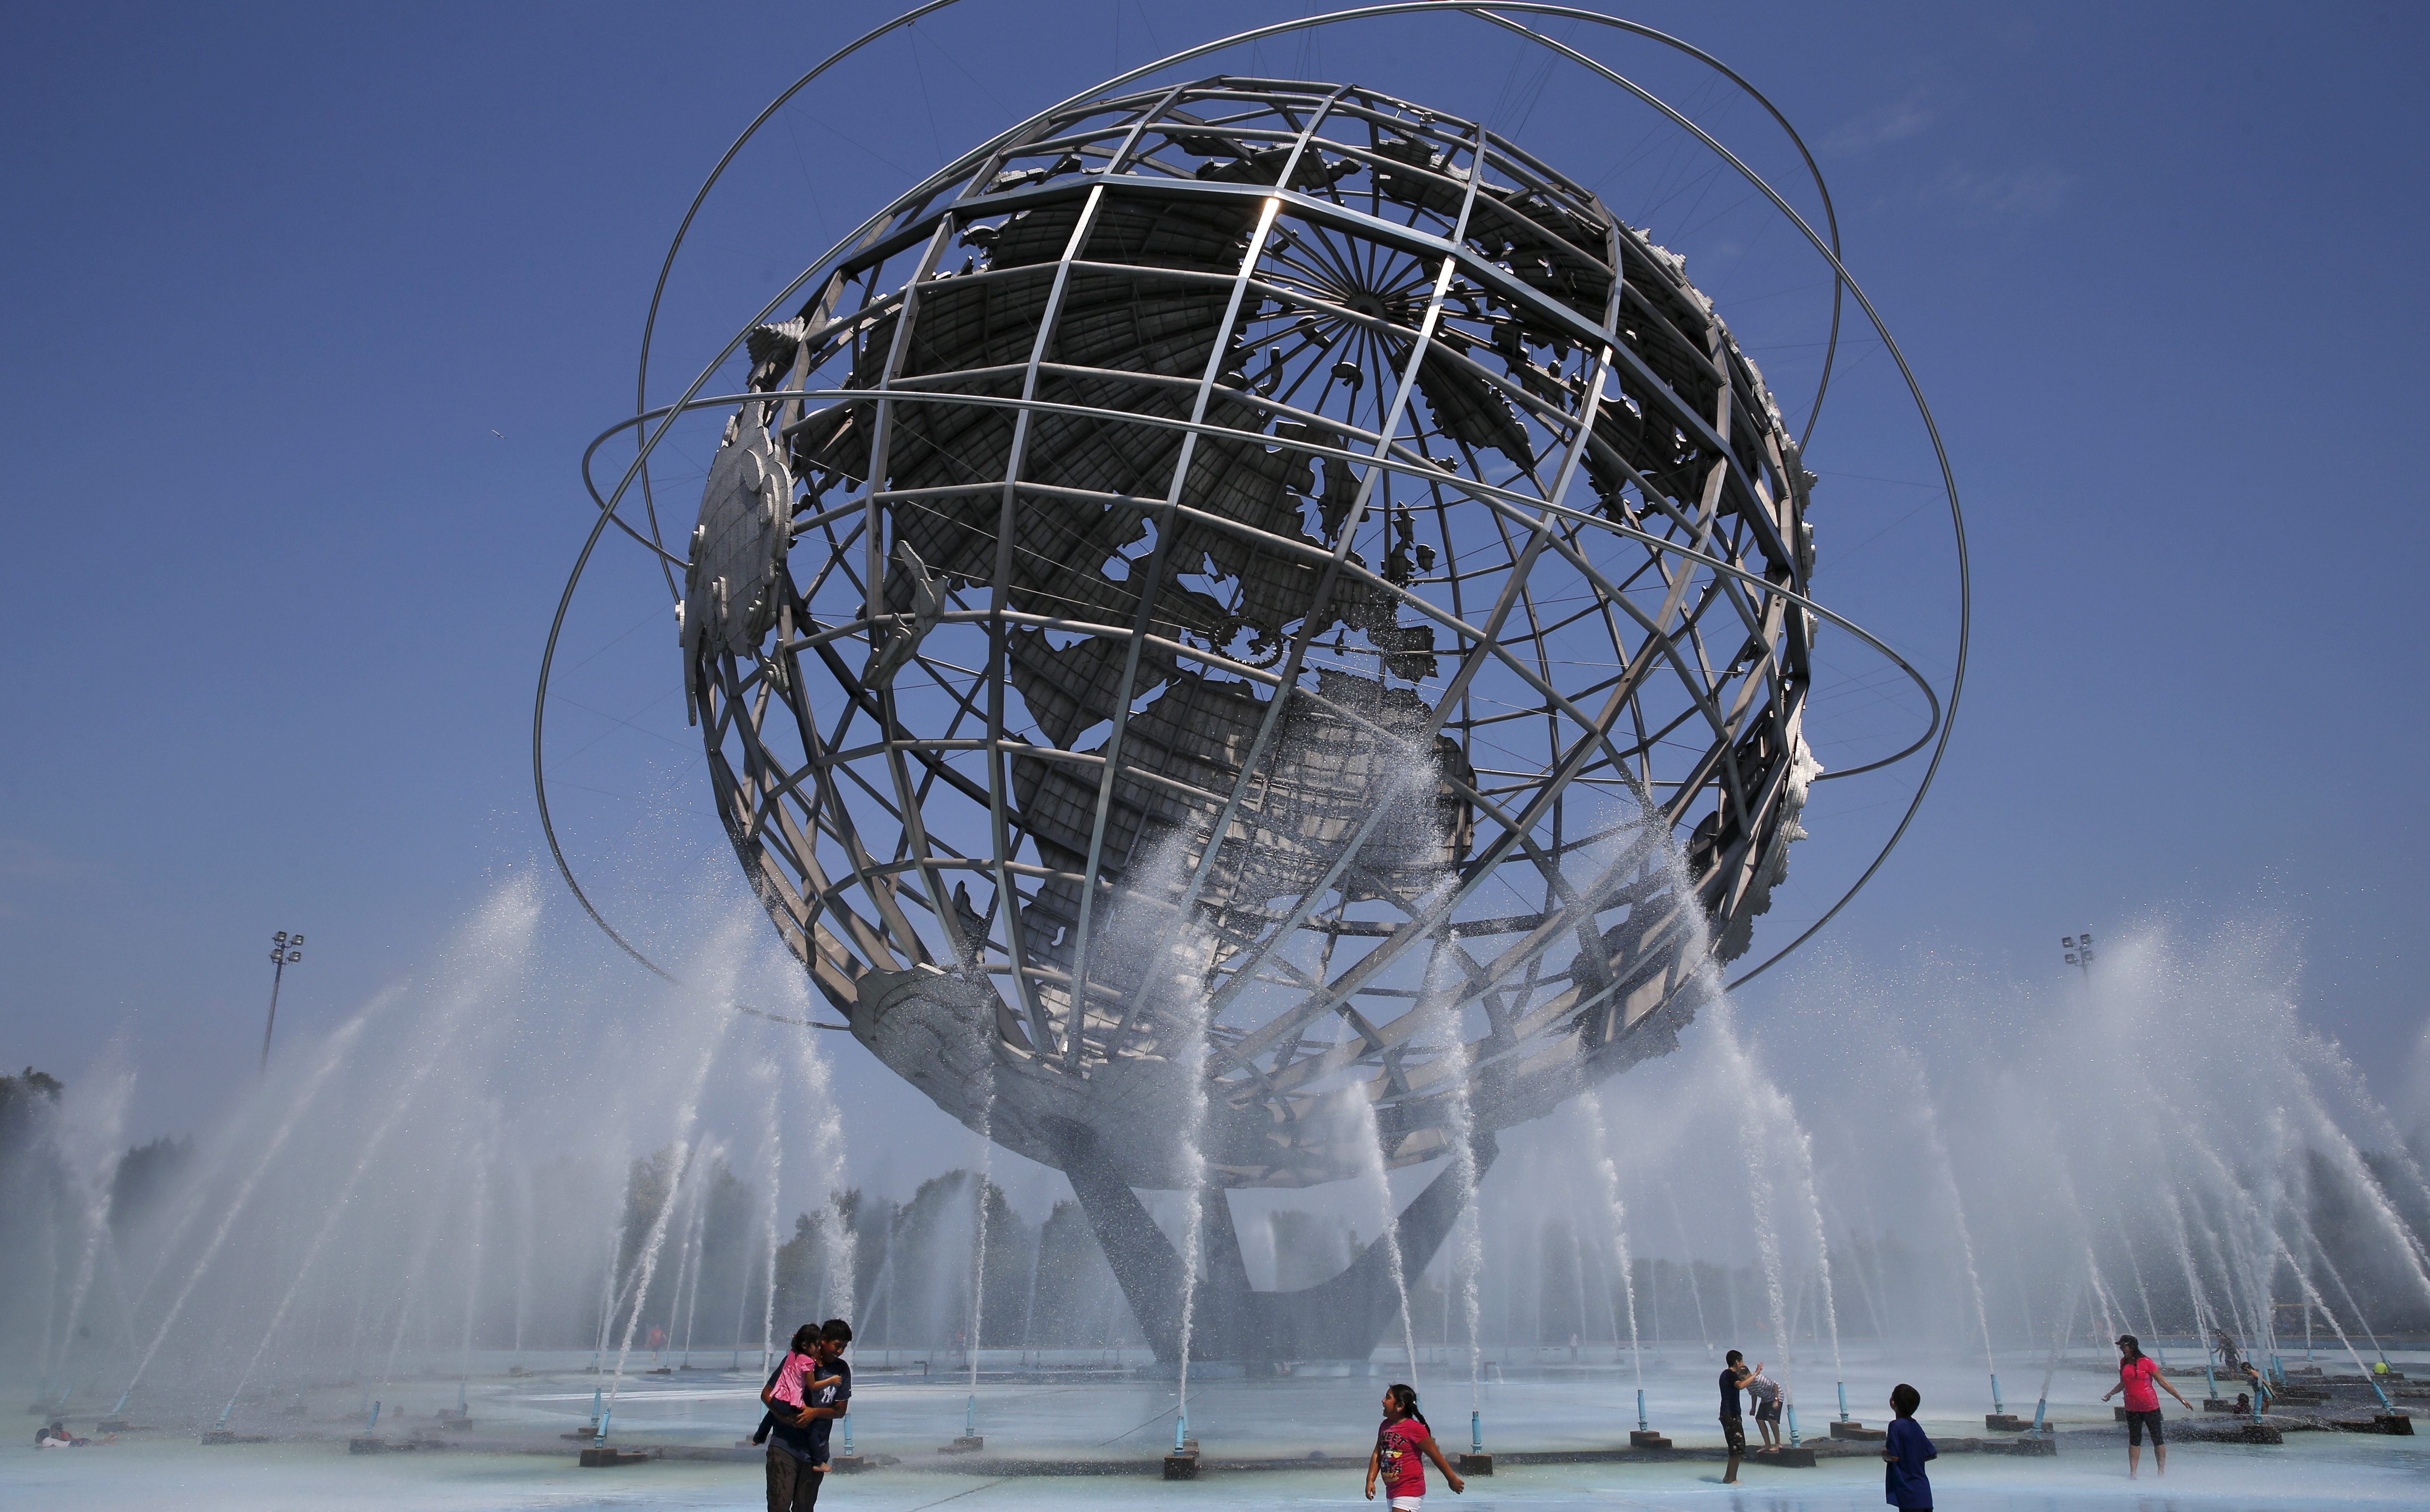 People cool off in the water at the Unisphere at Flushing Meadows Corona Park in the Queens borough of New York August 18, 2015.